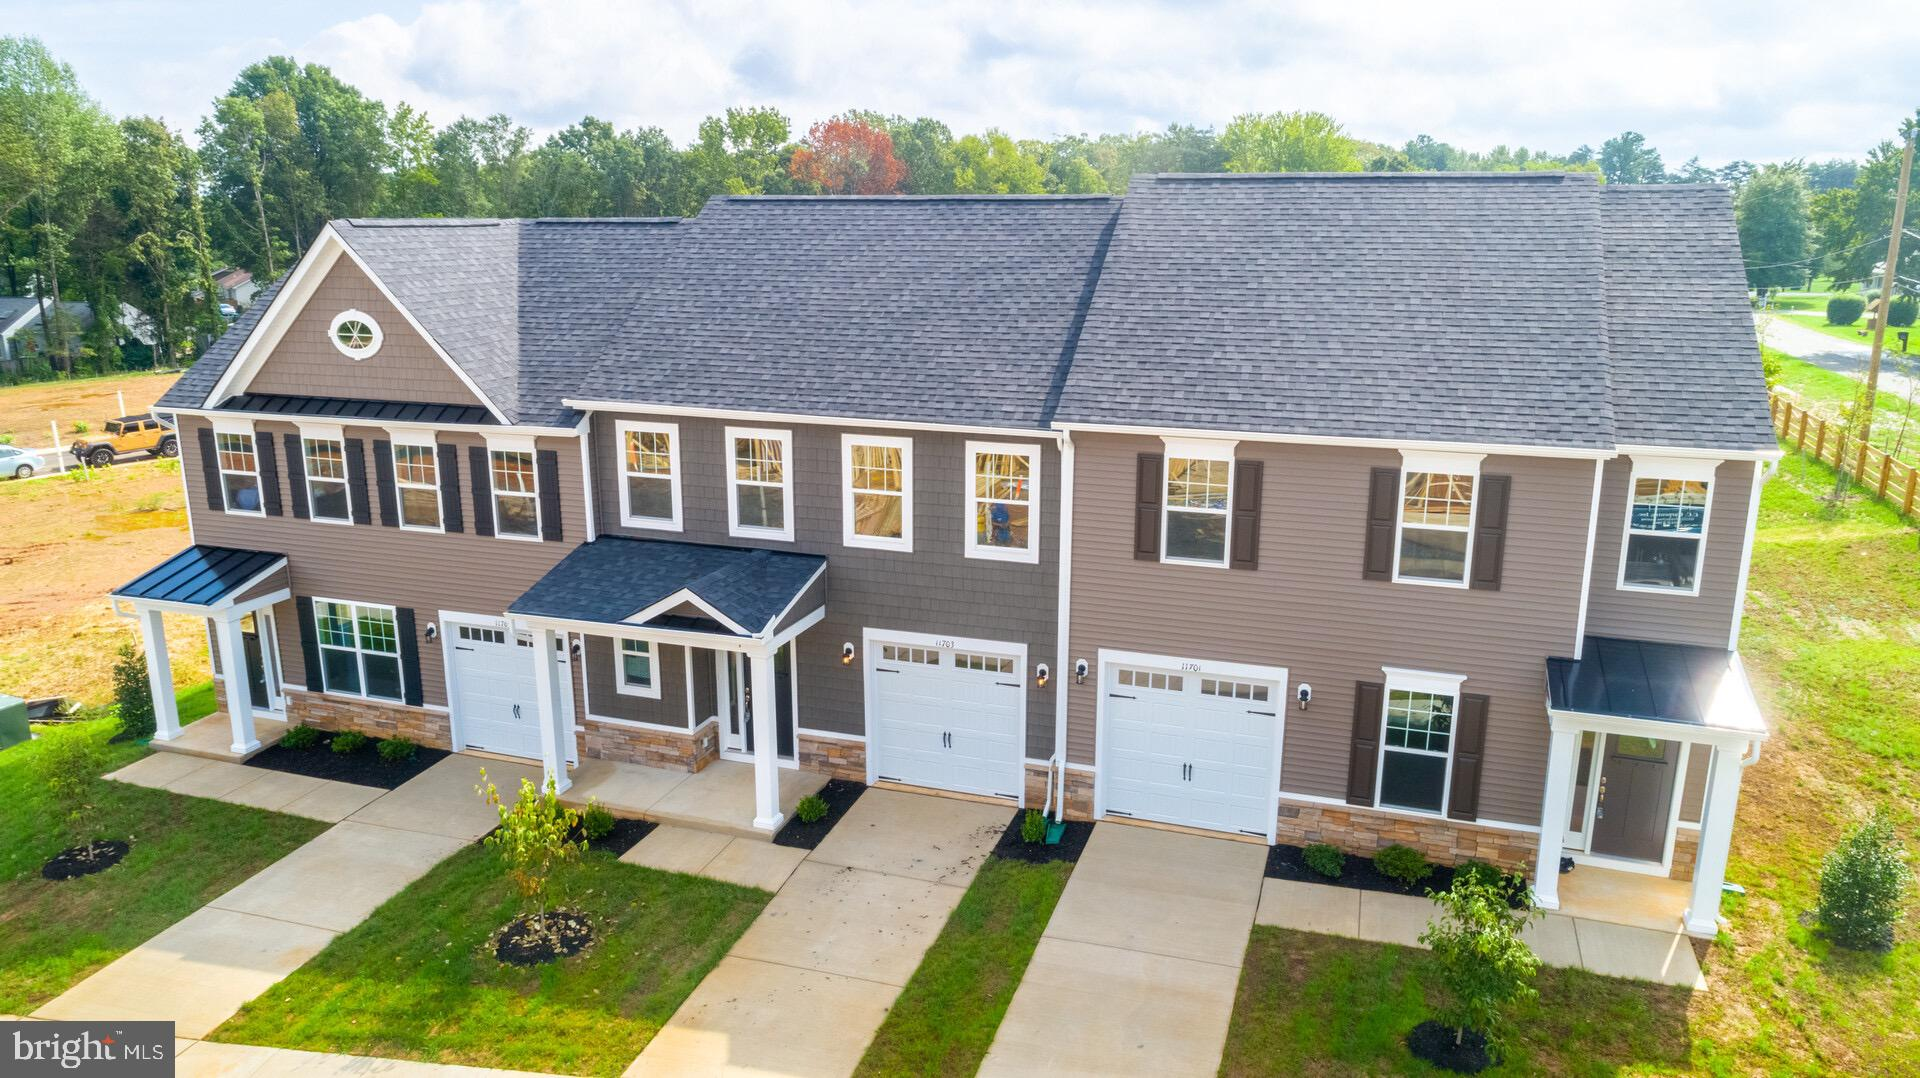 """Fabulous NEW 55+ Community just minutes from """"Everything Fredericksburg""""! You will LOVE our new Boutique Community. We have  Open, Modern, """"Main Floor Living"""" Floorplans that appeal to everyone! We only have 45 Home sites so you will need to make an appt sooner than later! Our Magnolia model BASE PRICE is $319,900 and is 1925 square feet. Final prices will vary based on Options selected!  Every inch is usable and makes sense! We have a row of homes started that will be finished before we know it! Our standards include: Stainless Steel Appliances, Gas Heat and Cooking, Gas Fireplace, Ceramic Primary Bath flooring and Shower, Granite Counters in the Kitchen , the list goes on! JGH Building & Consulting has a reputation for attention to detail, you will notice the difference when you tour our homes! The pictures are of our model home, options will vary in the Villas being built!"""